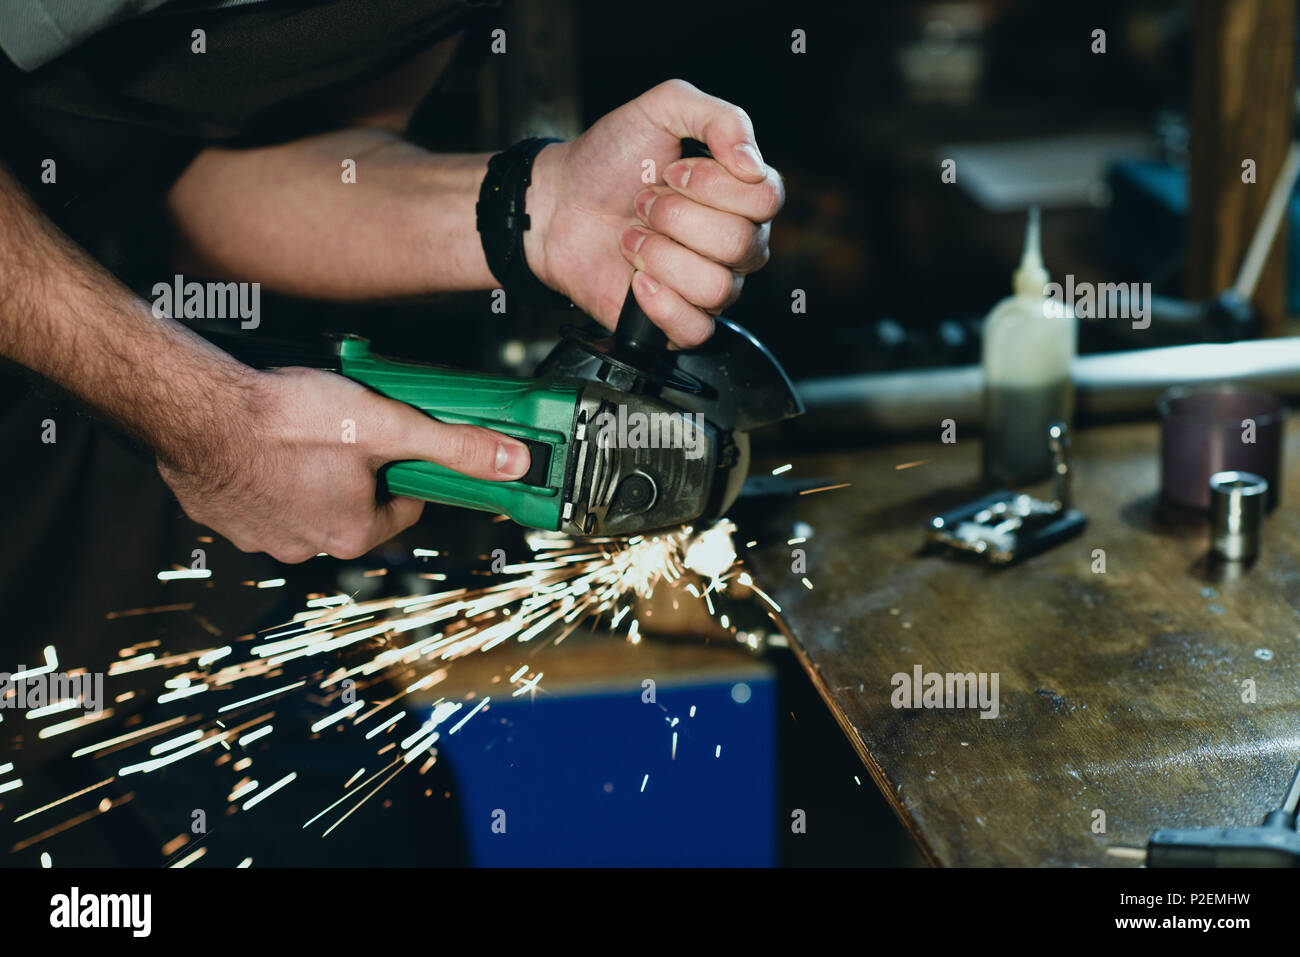 close-up partial view of man cutting metal with angle grinder in workshop - Stock Image